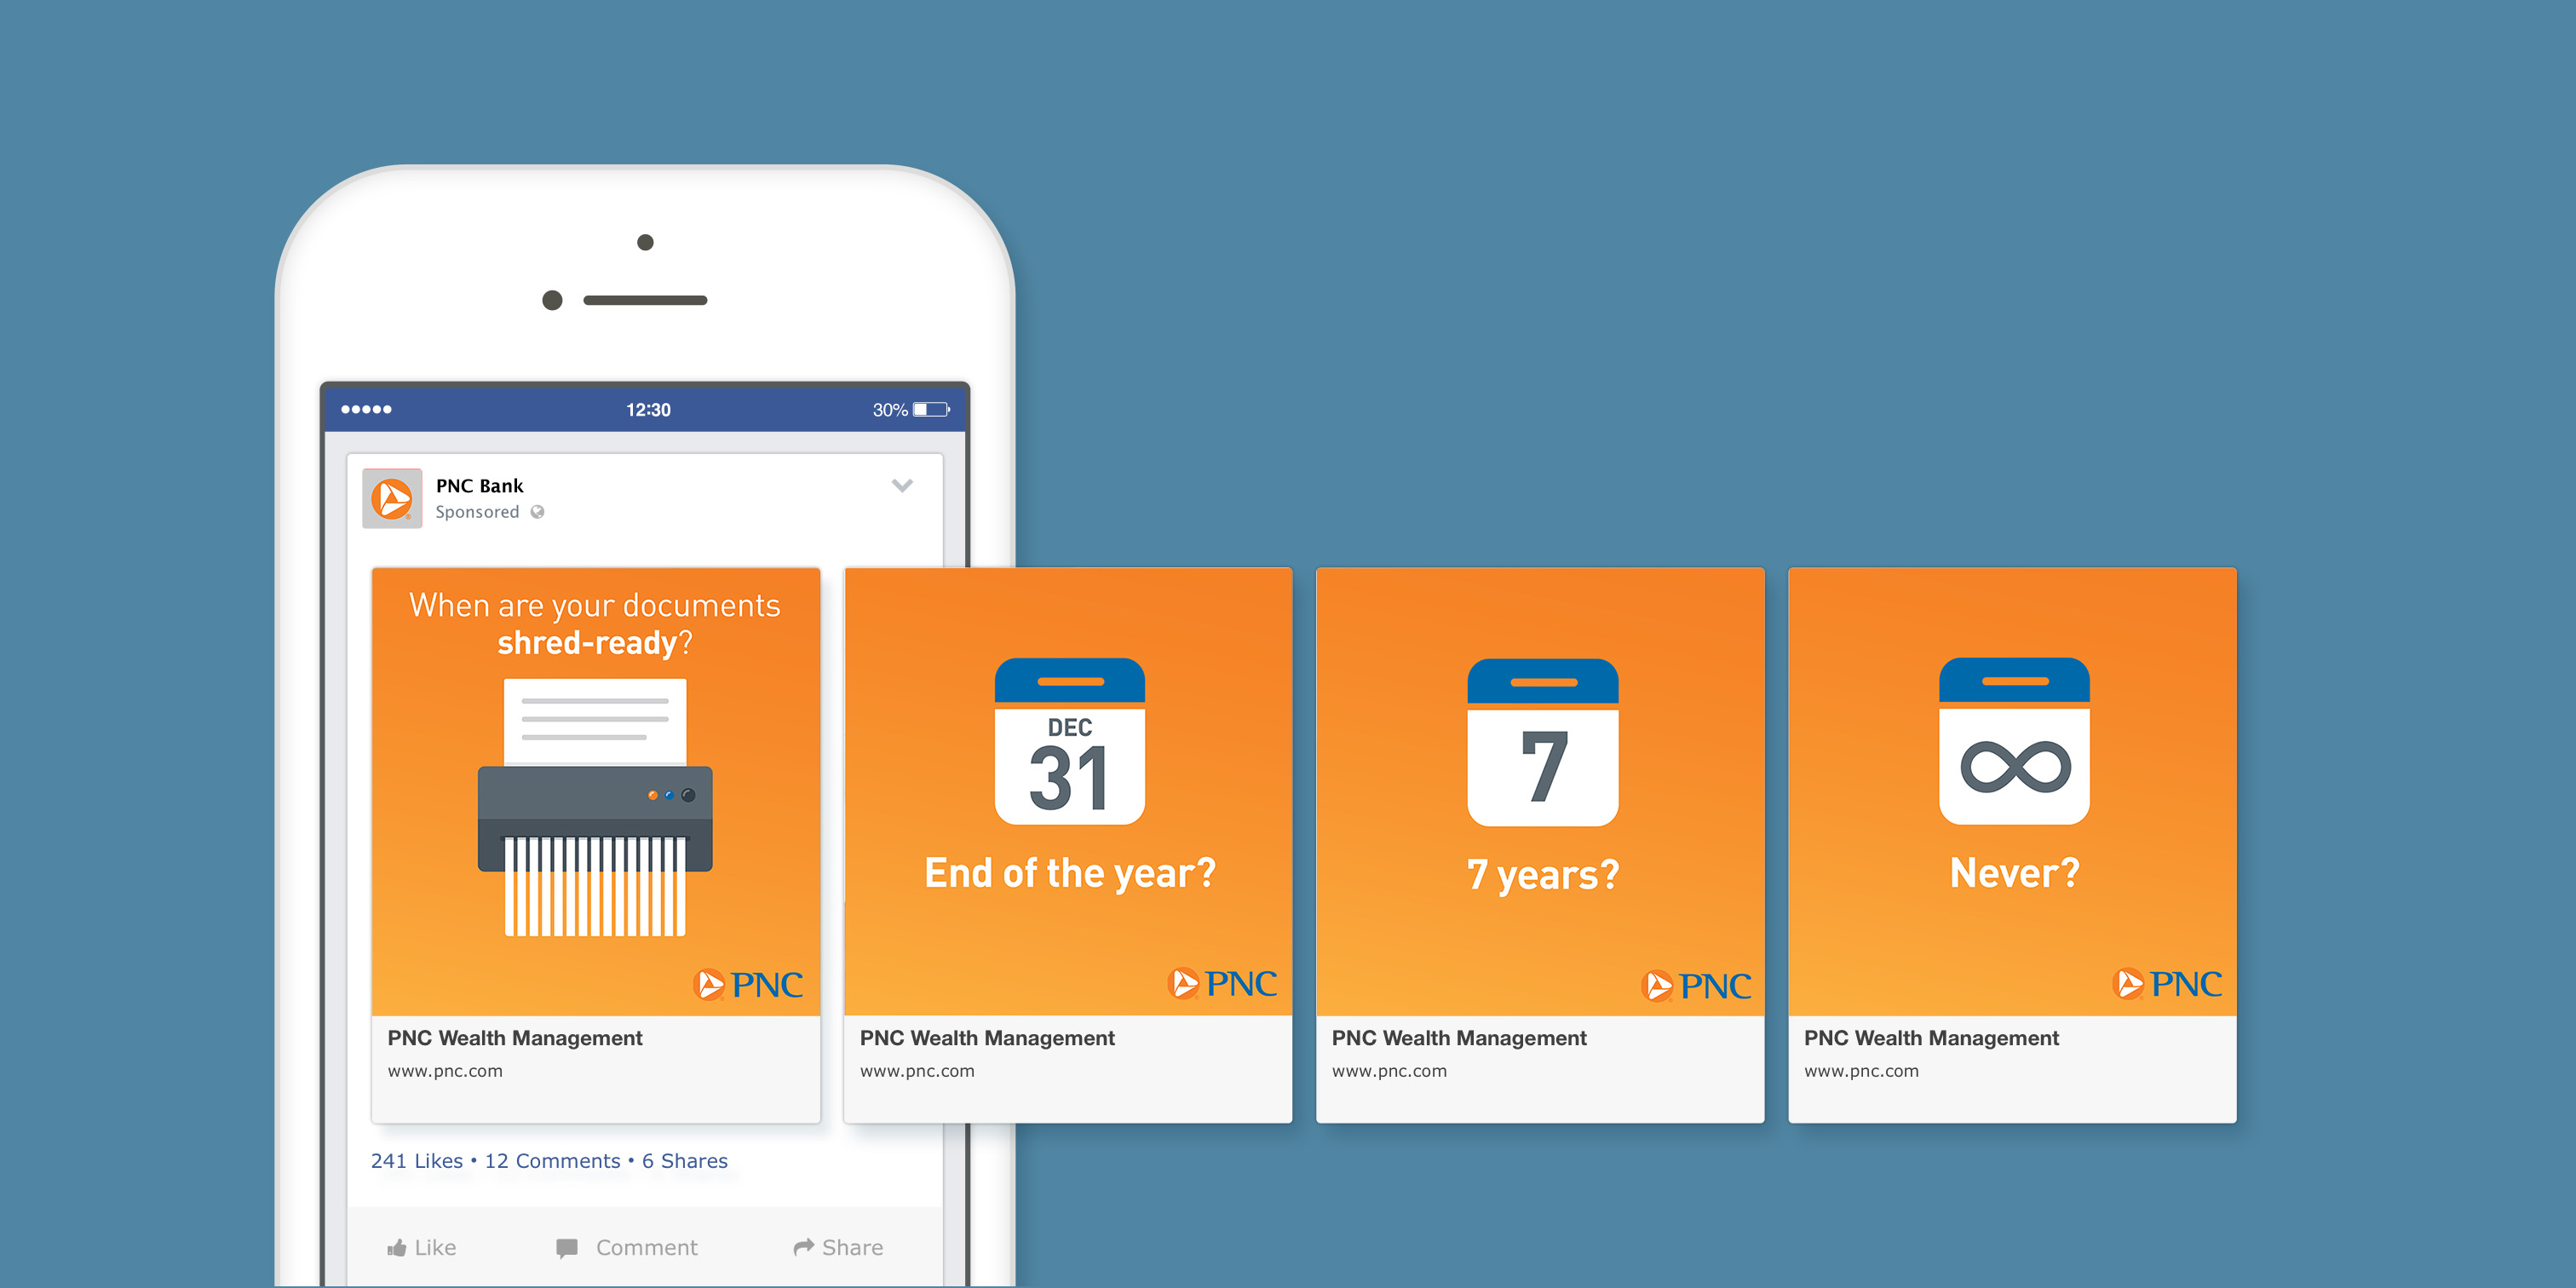 A mockup of a phone screen that shows four slides of a social media carousel post over a blue background. The slides feature an orange gradient background with copy that discusses when to shred certain type of documents, accompanied by illustrations of a shredder and calendars featuring various dates/amounts of time.